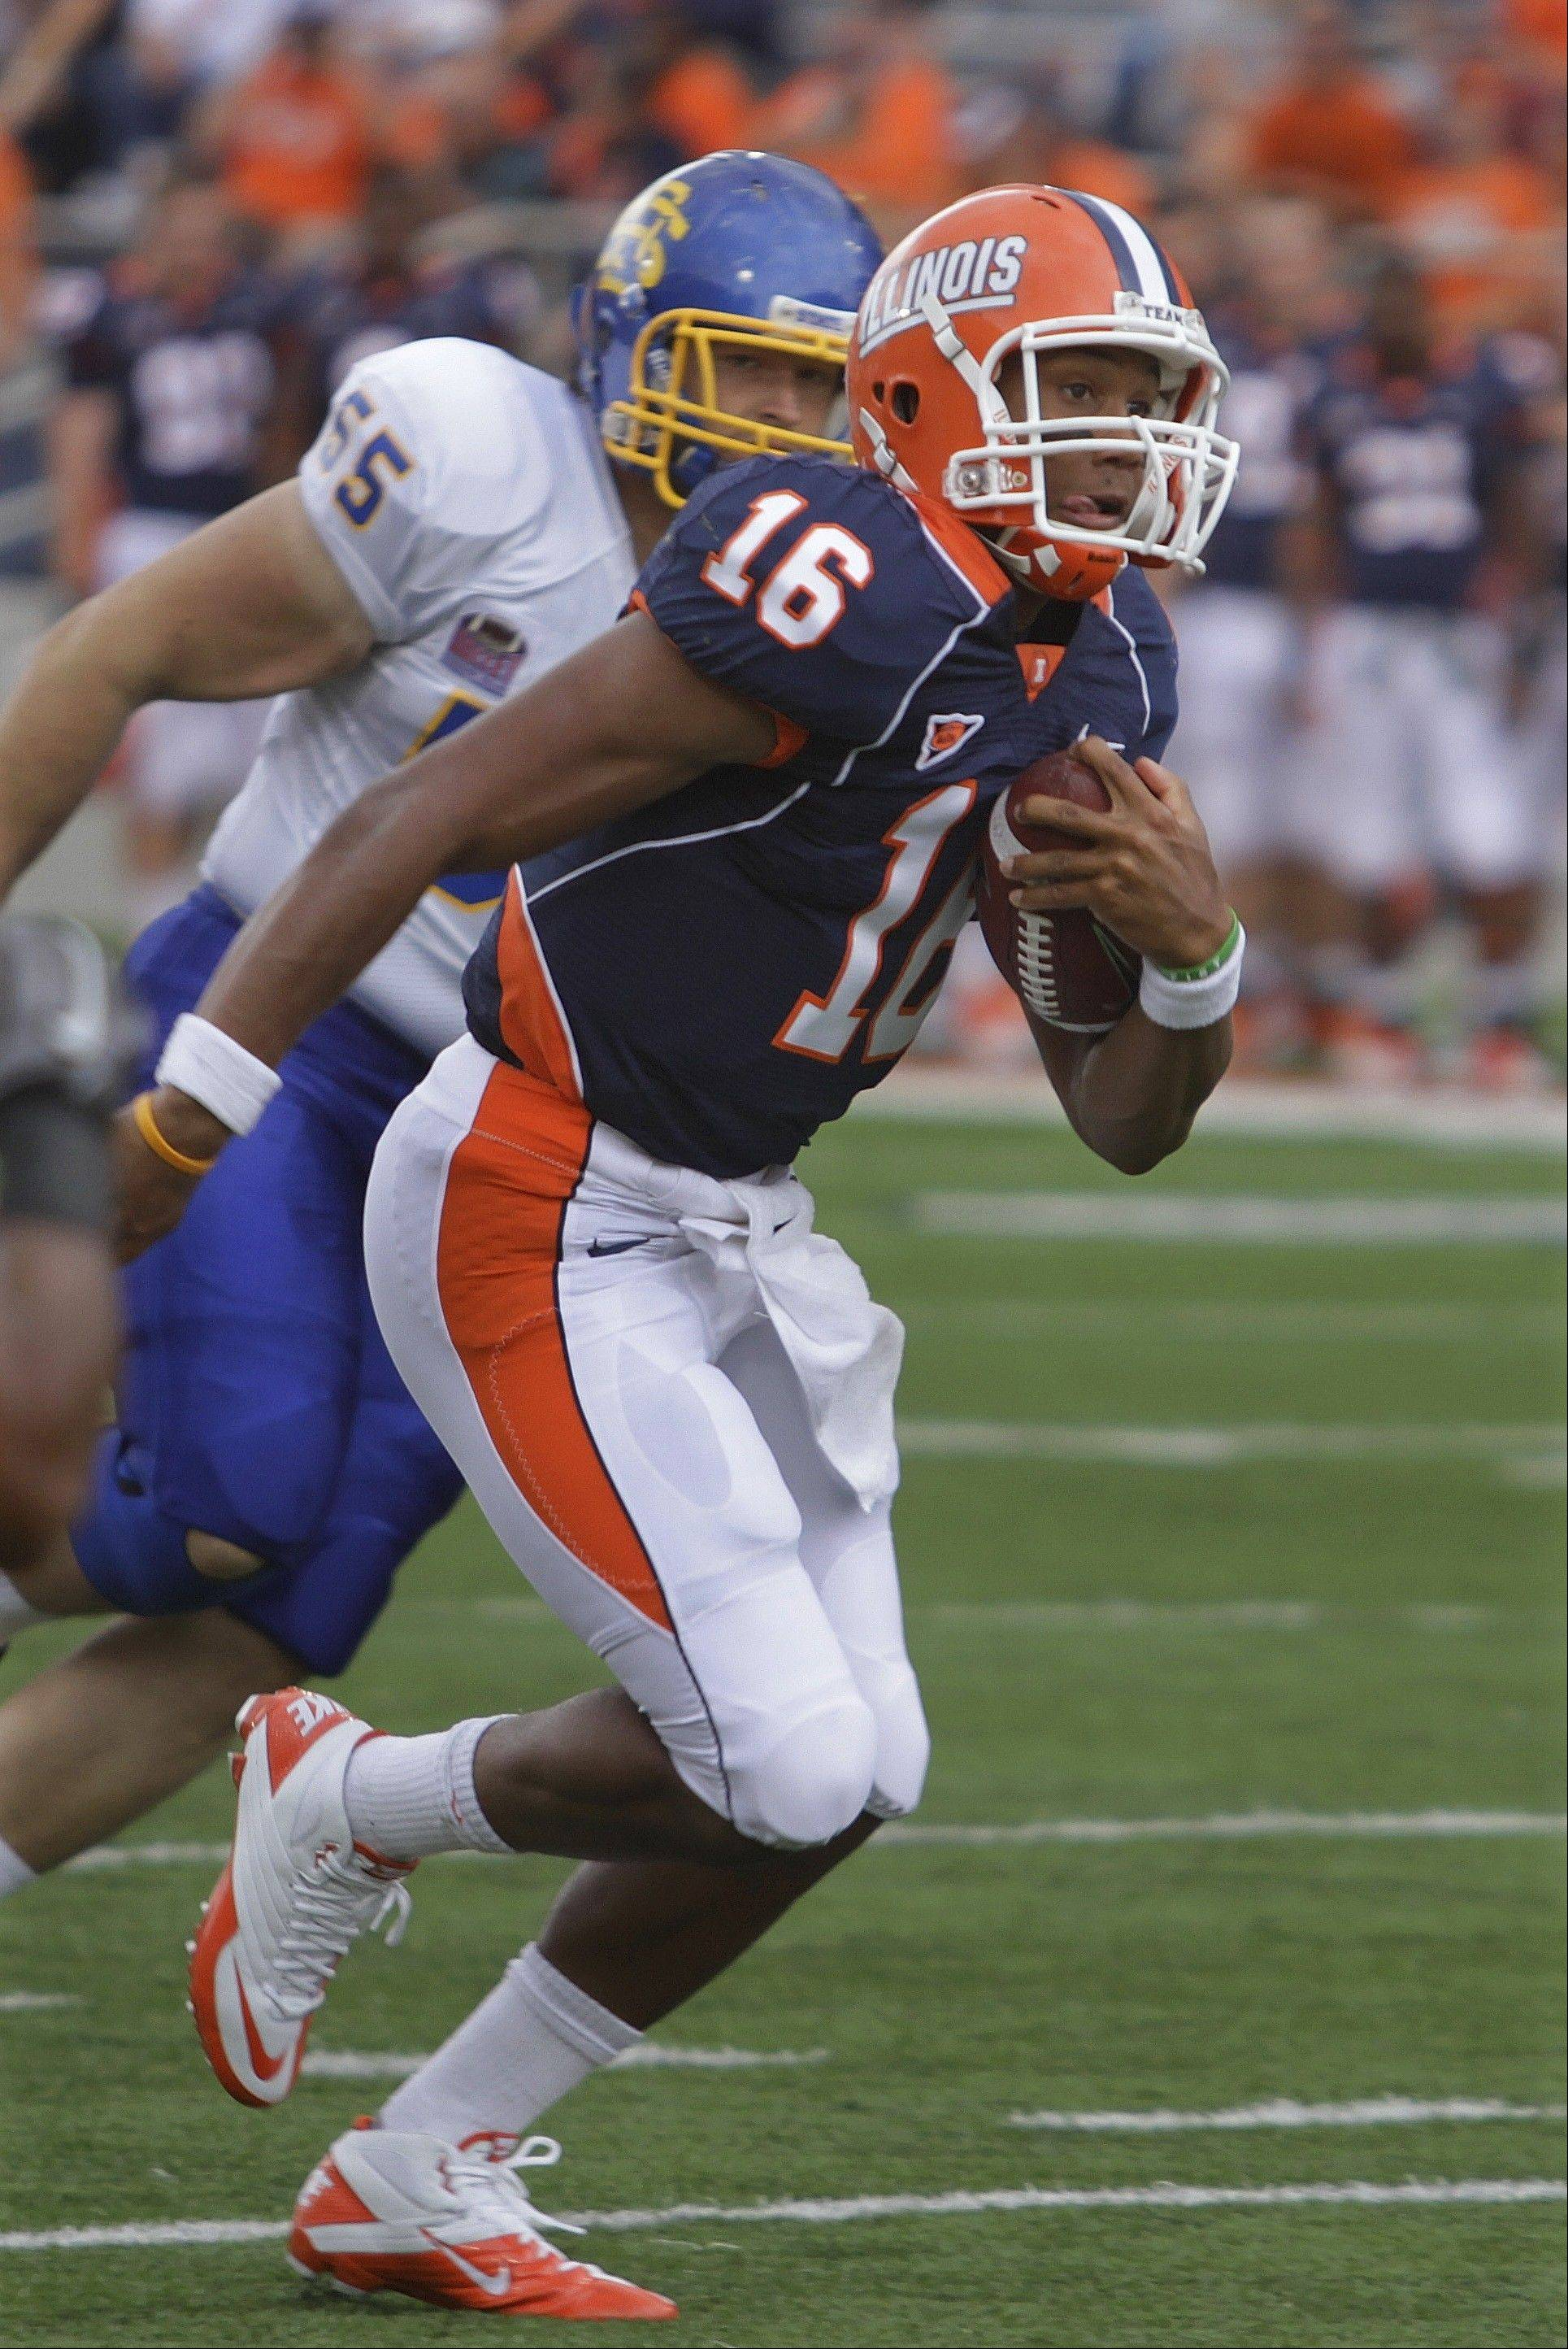 Illinois quarterback Miles Osei (16), a former star at Prospect High School, is in a battle with sophomore quarterback Reilly O'Toole, a former Wheaton Warrenville South star, for the No. 2 QB role at Illinois.